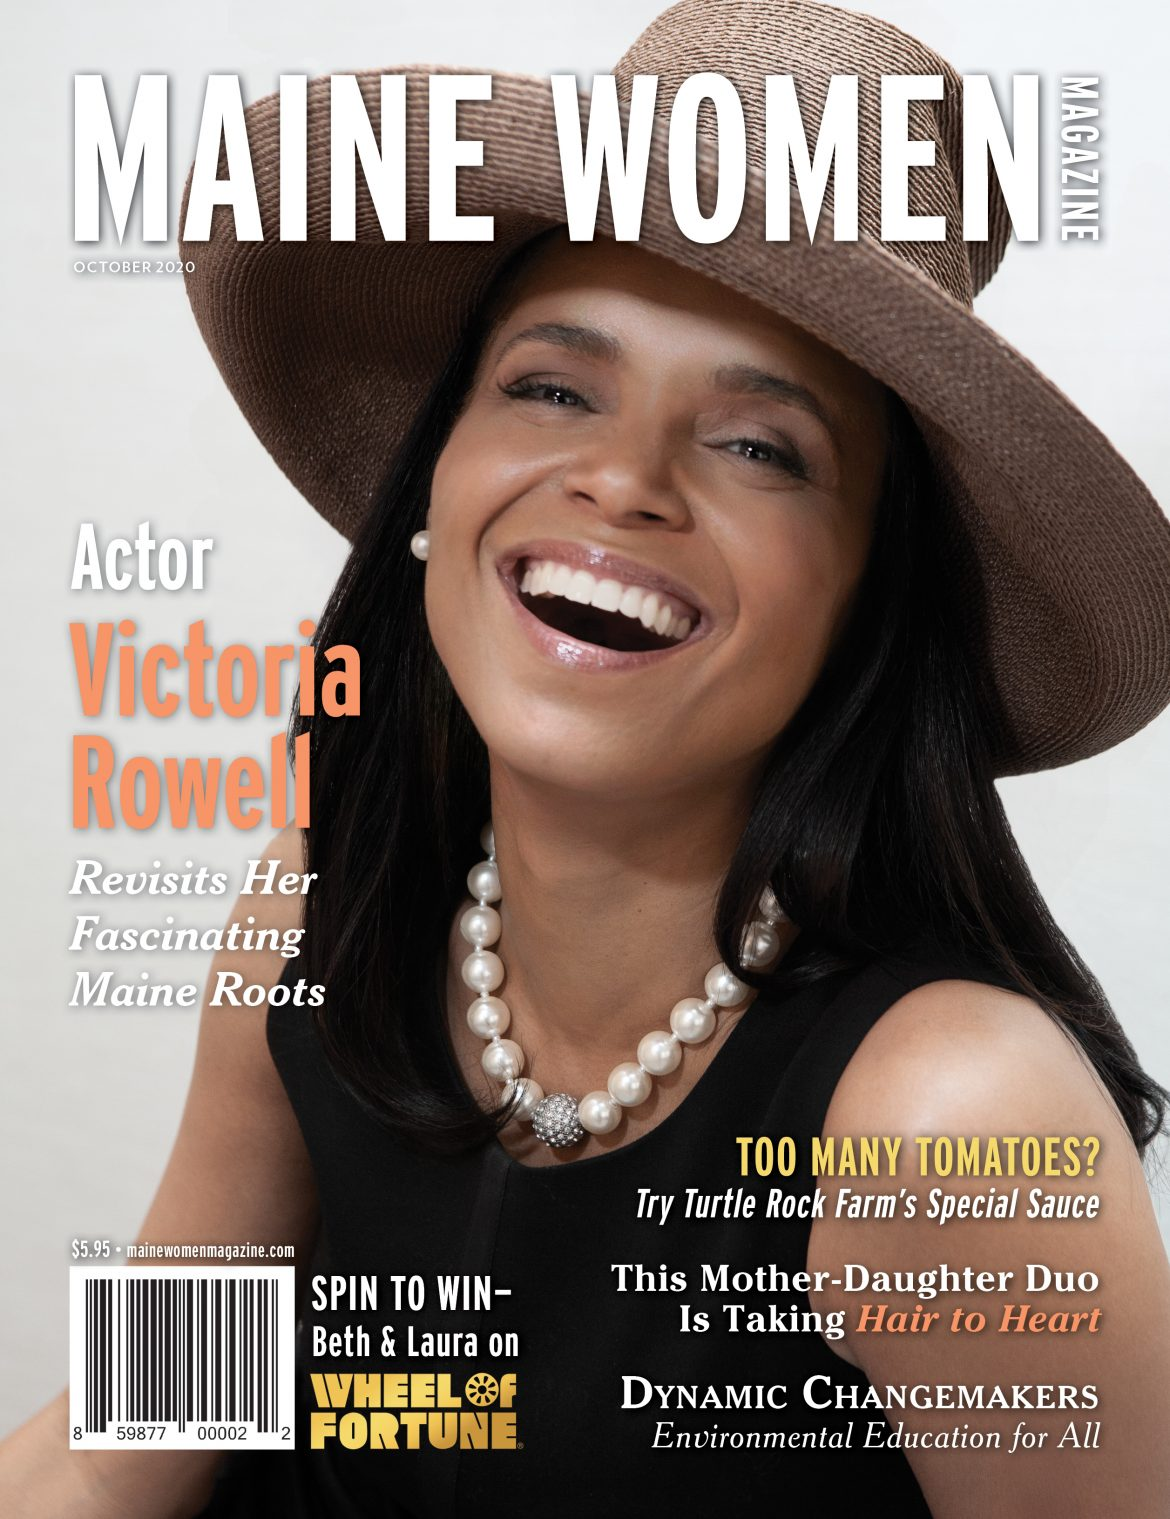 October 2020: Victoria Rowell